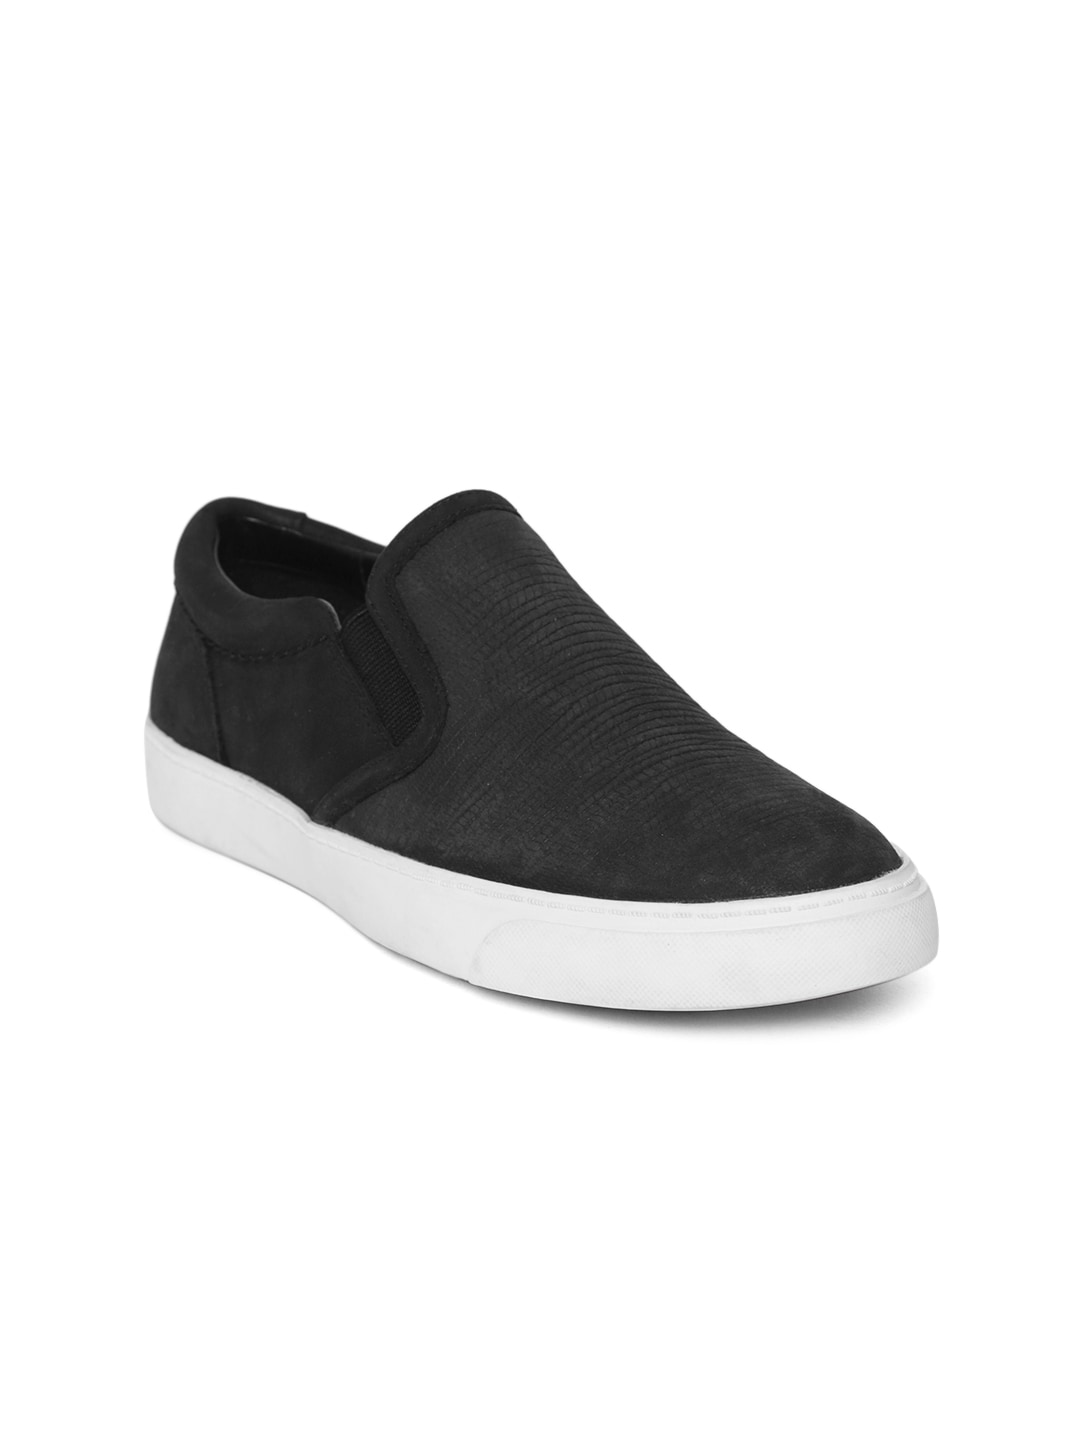 hot sale online 96737 fc786 Buy ADIDAS NEO Women Black DAILY QT LX Textured Sneakers - C